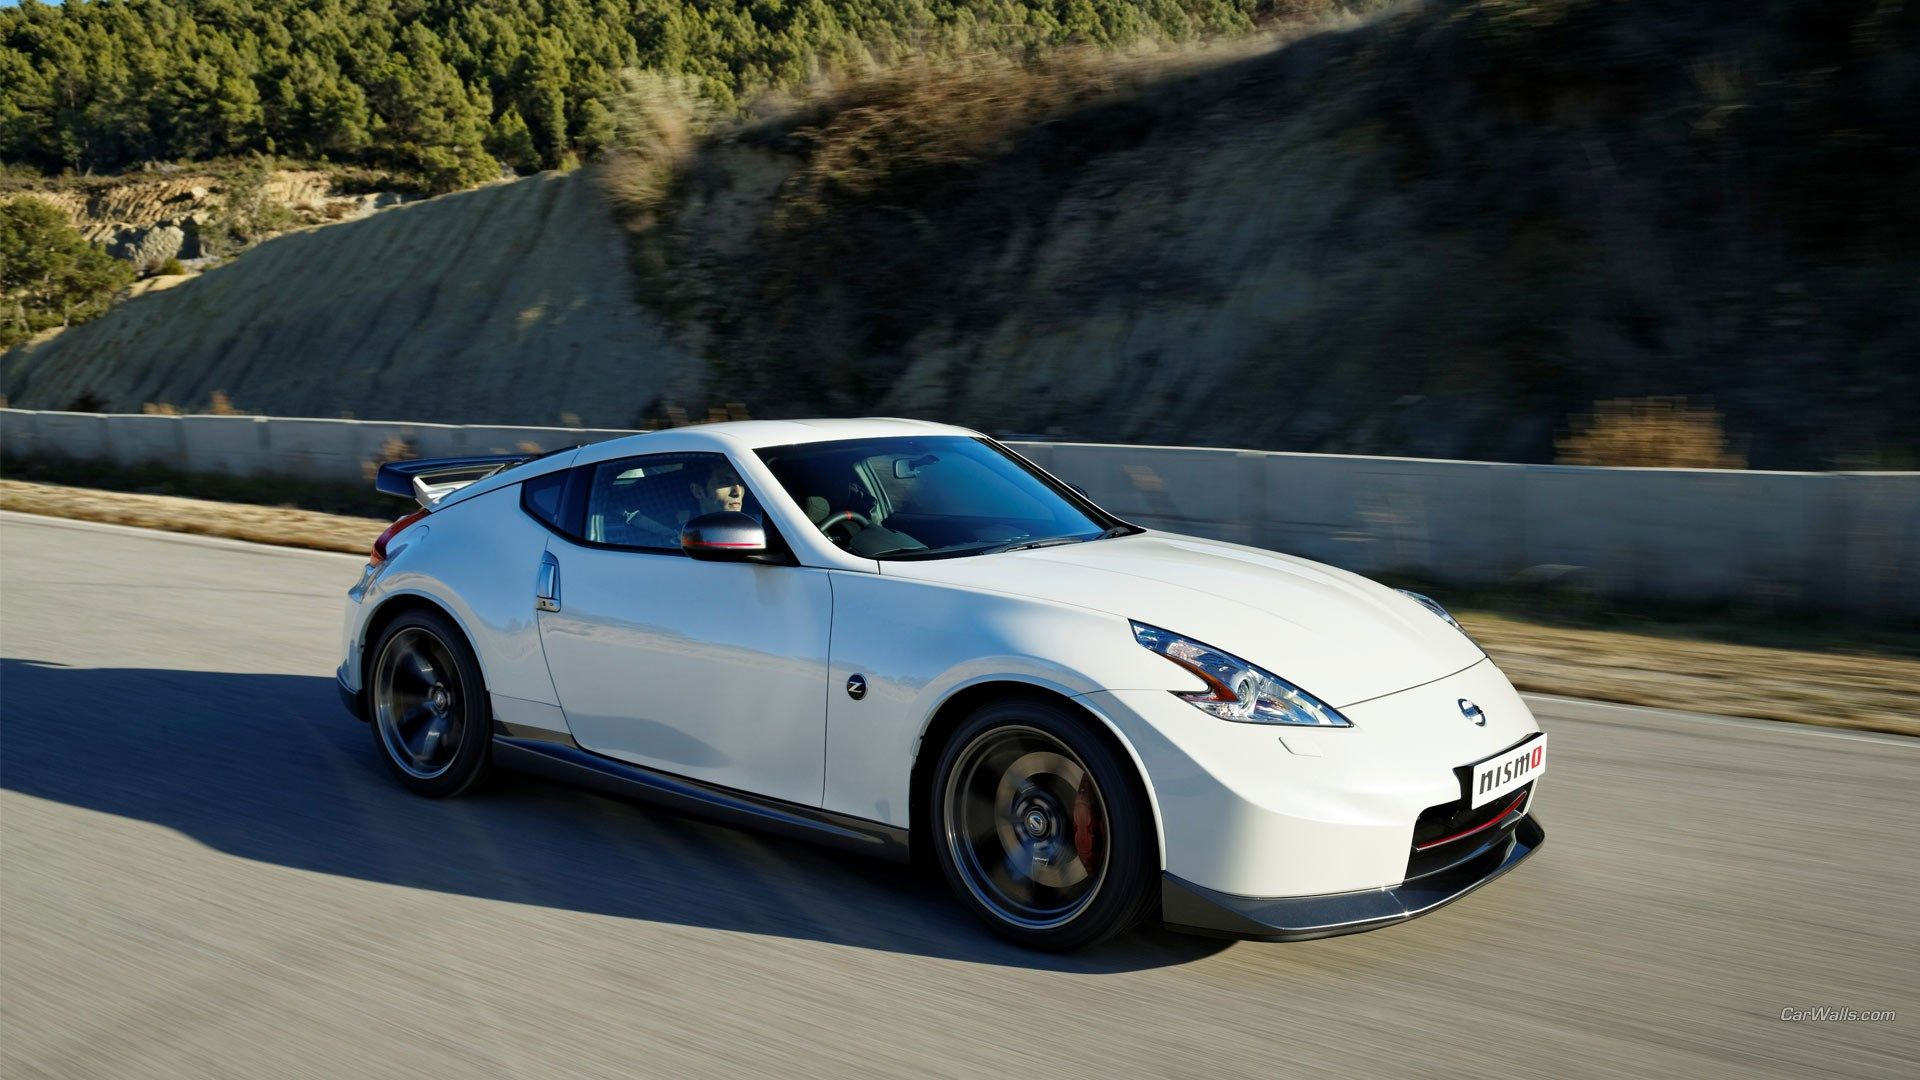 Nissan 370z Nismo 4K Wallpaper  Https://free4kwallpapers.com/wallpaper/cars Motorcycles/cars/nissan 370z Nismo 4k/YY7O  | Desktop Wallpapers | Pinterest ...